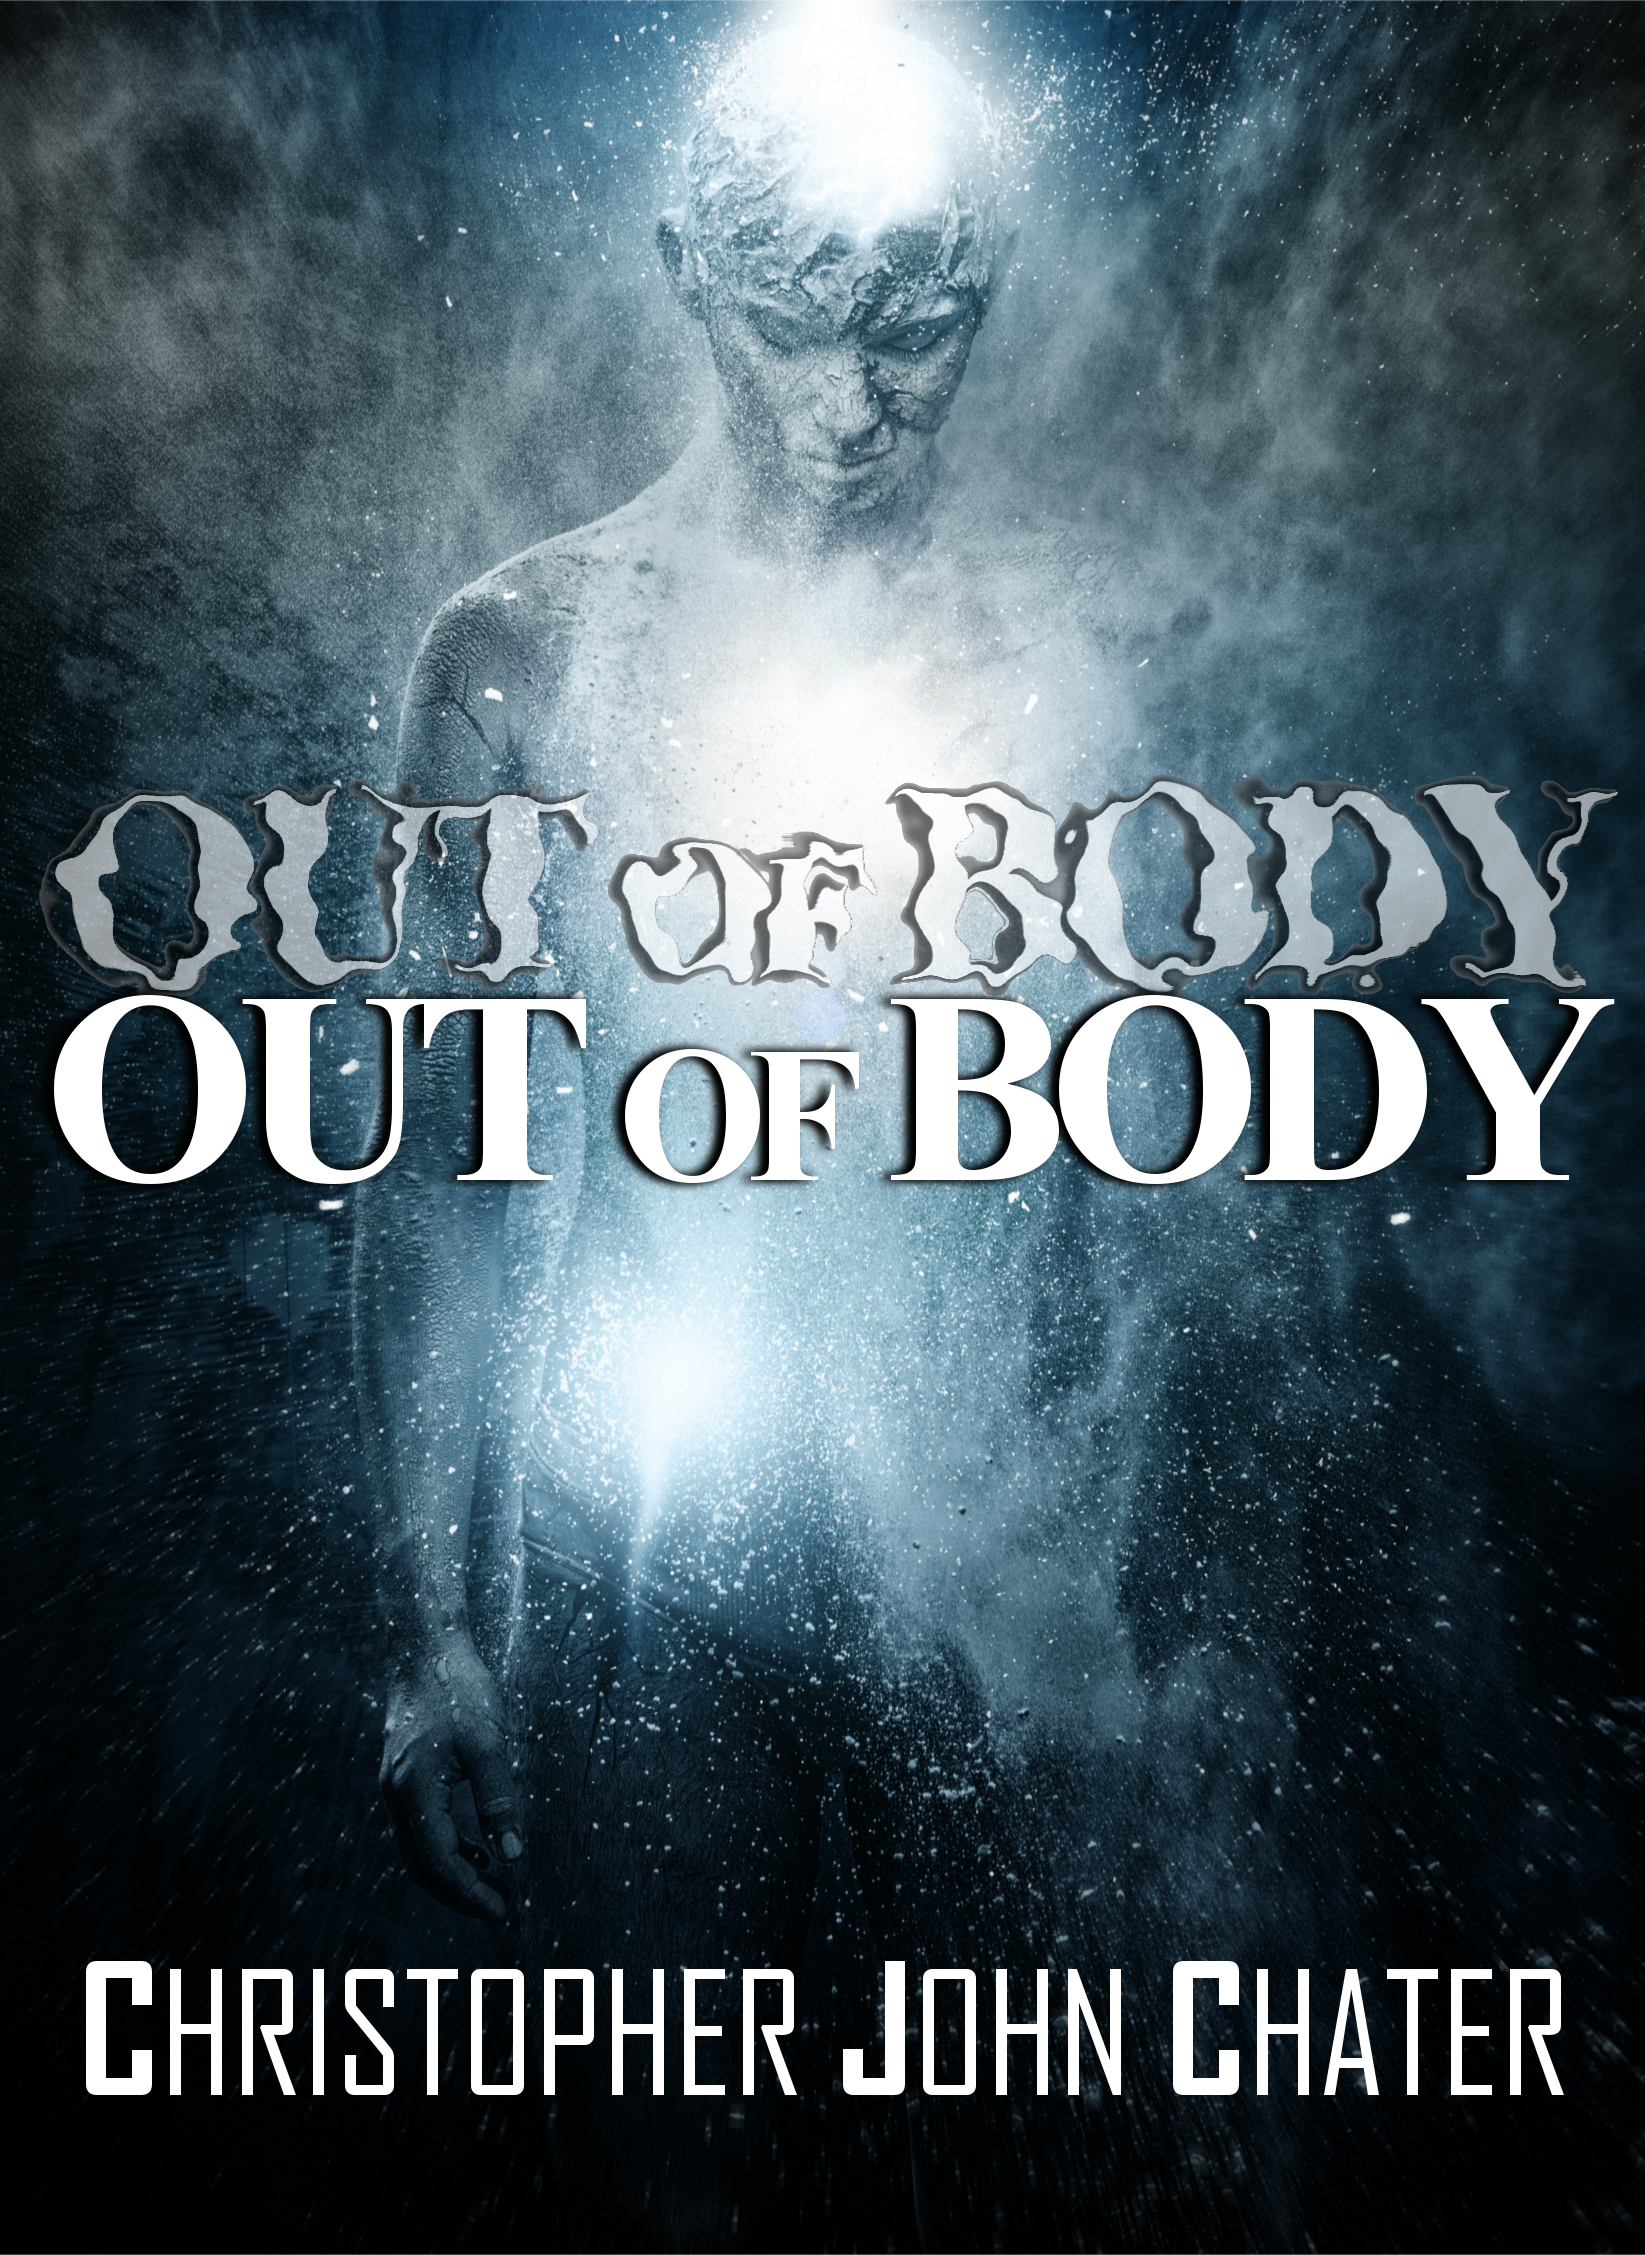 Out of Body Christopher John Chater